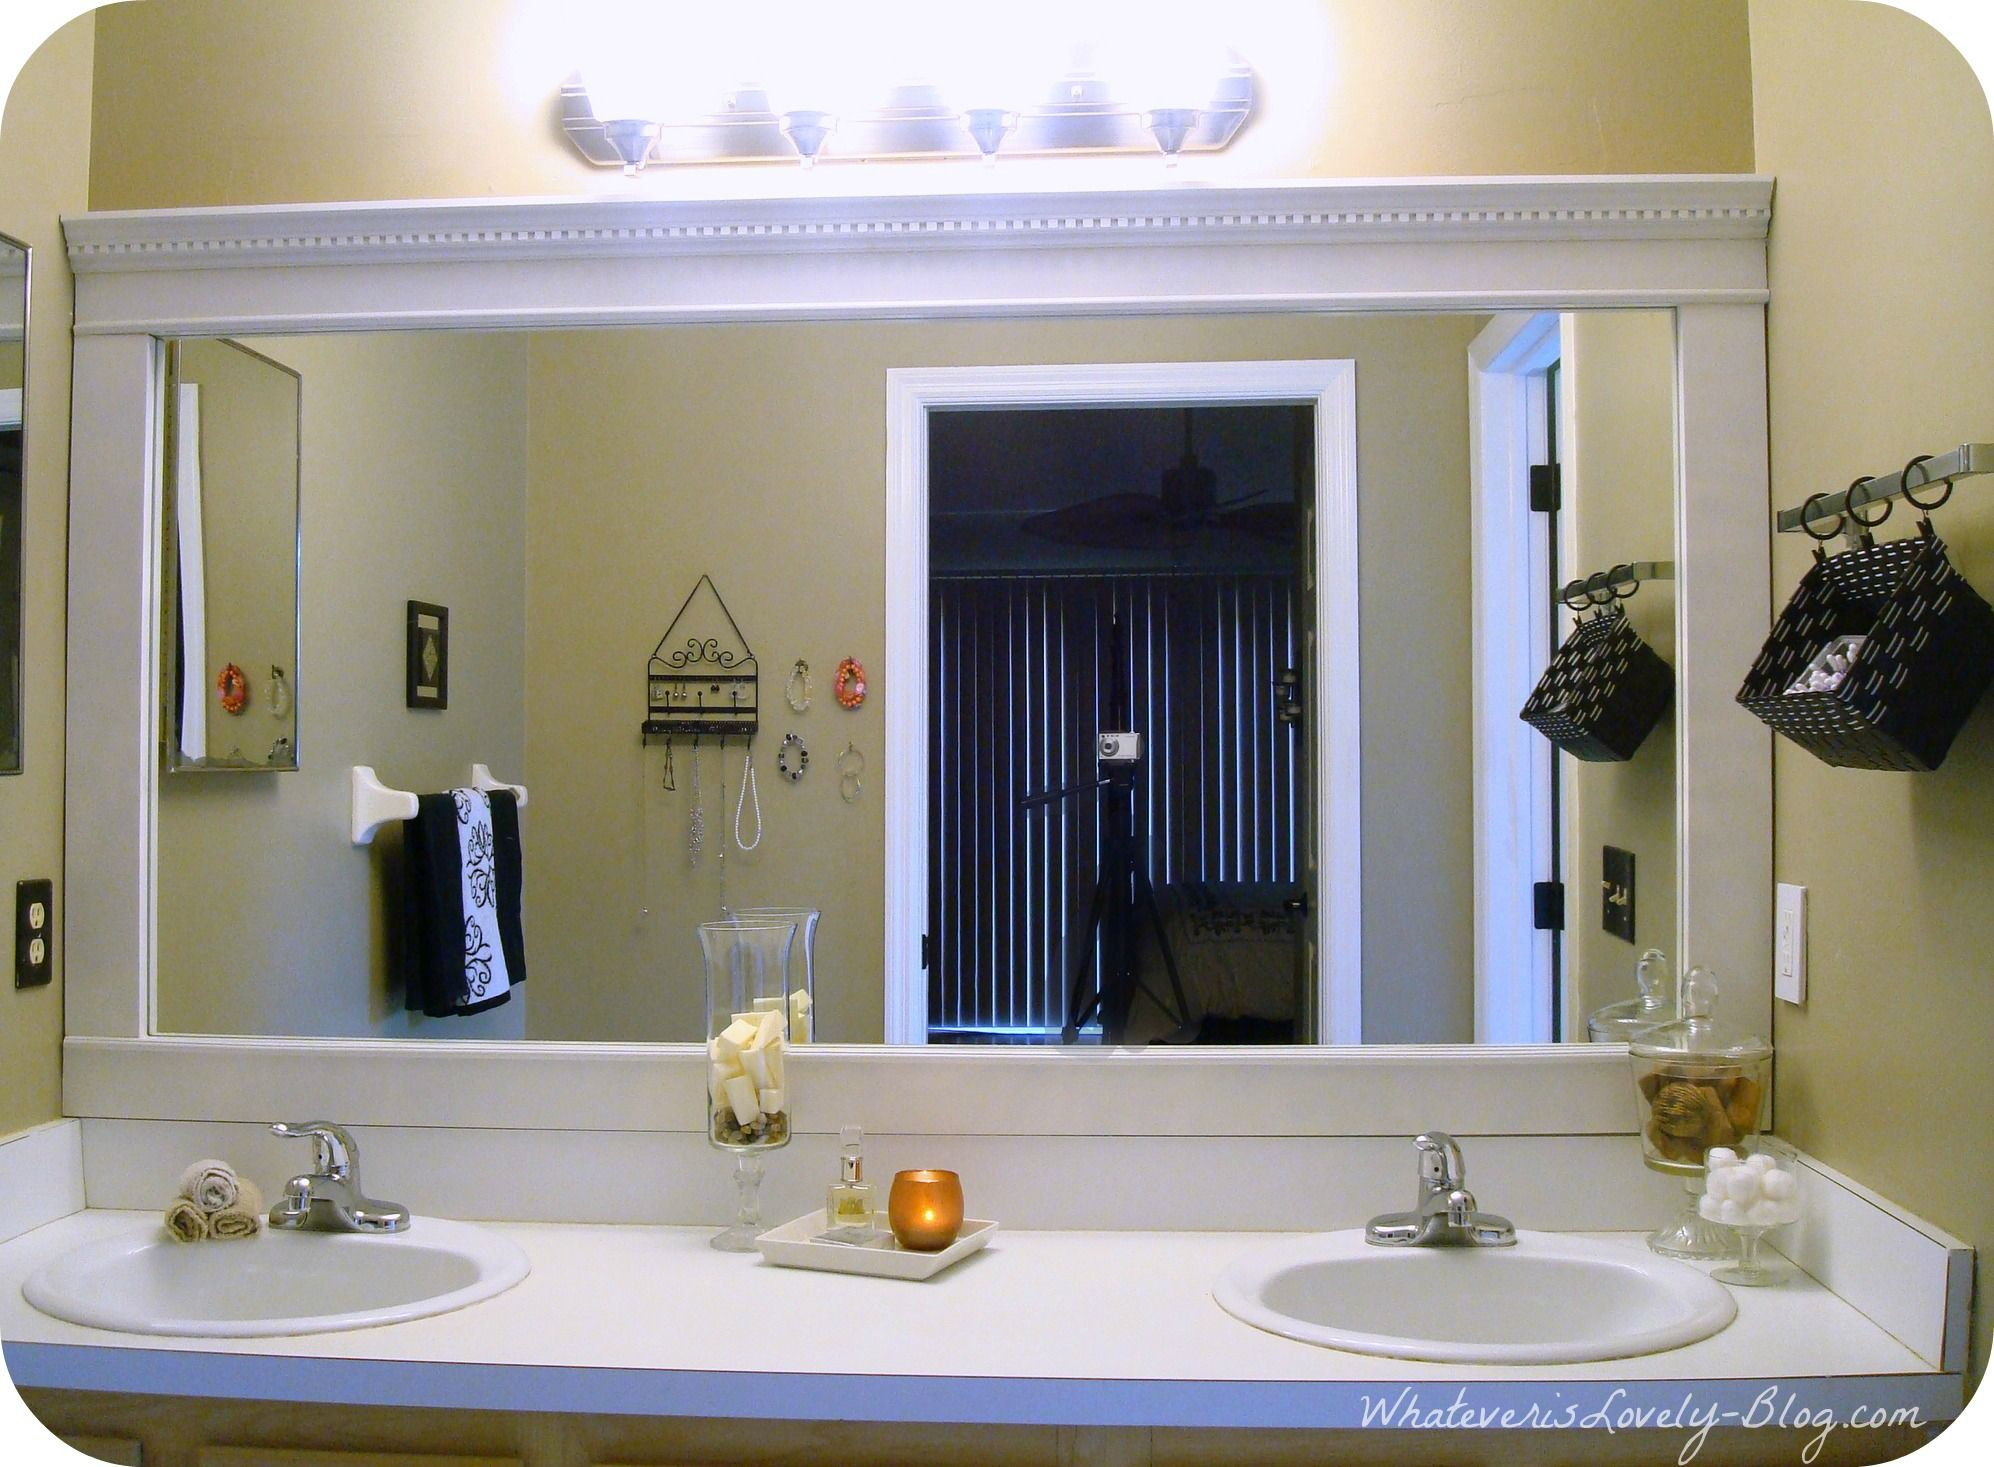 Bathroom mirror ideas diy - Bathroom Mirror Framed With Crown Molding Bathroom Ideas Home Decor Framed Bathroom Mirror With Crown Molding